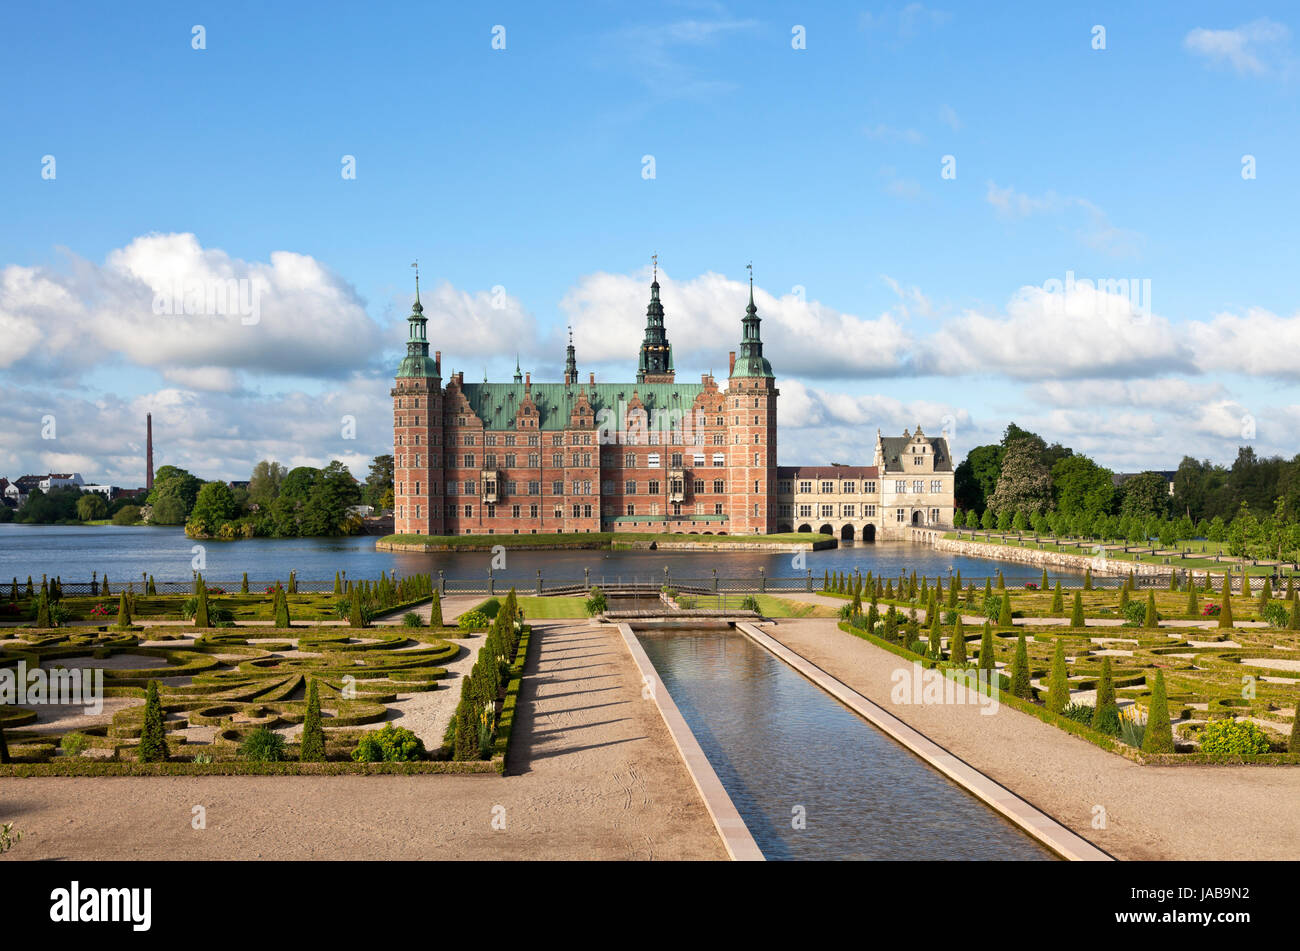 the-frederiksborg-castle-in-dutch-renais